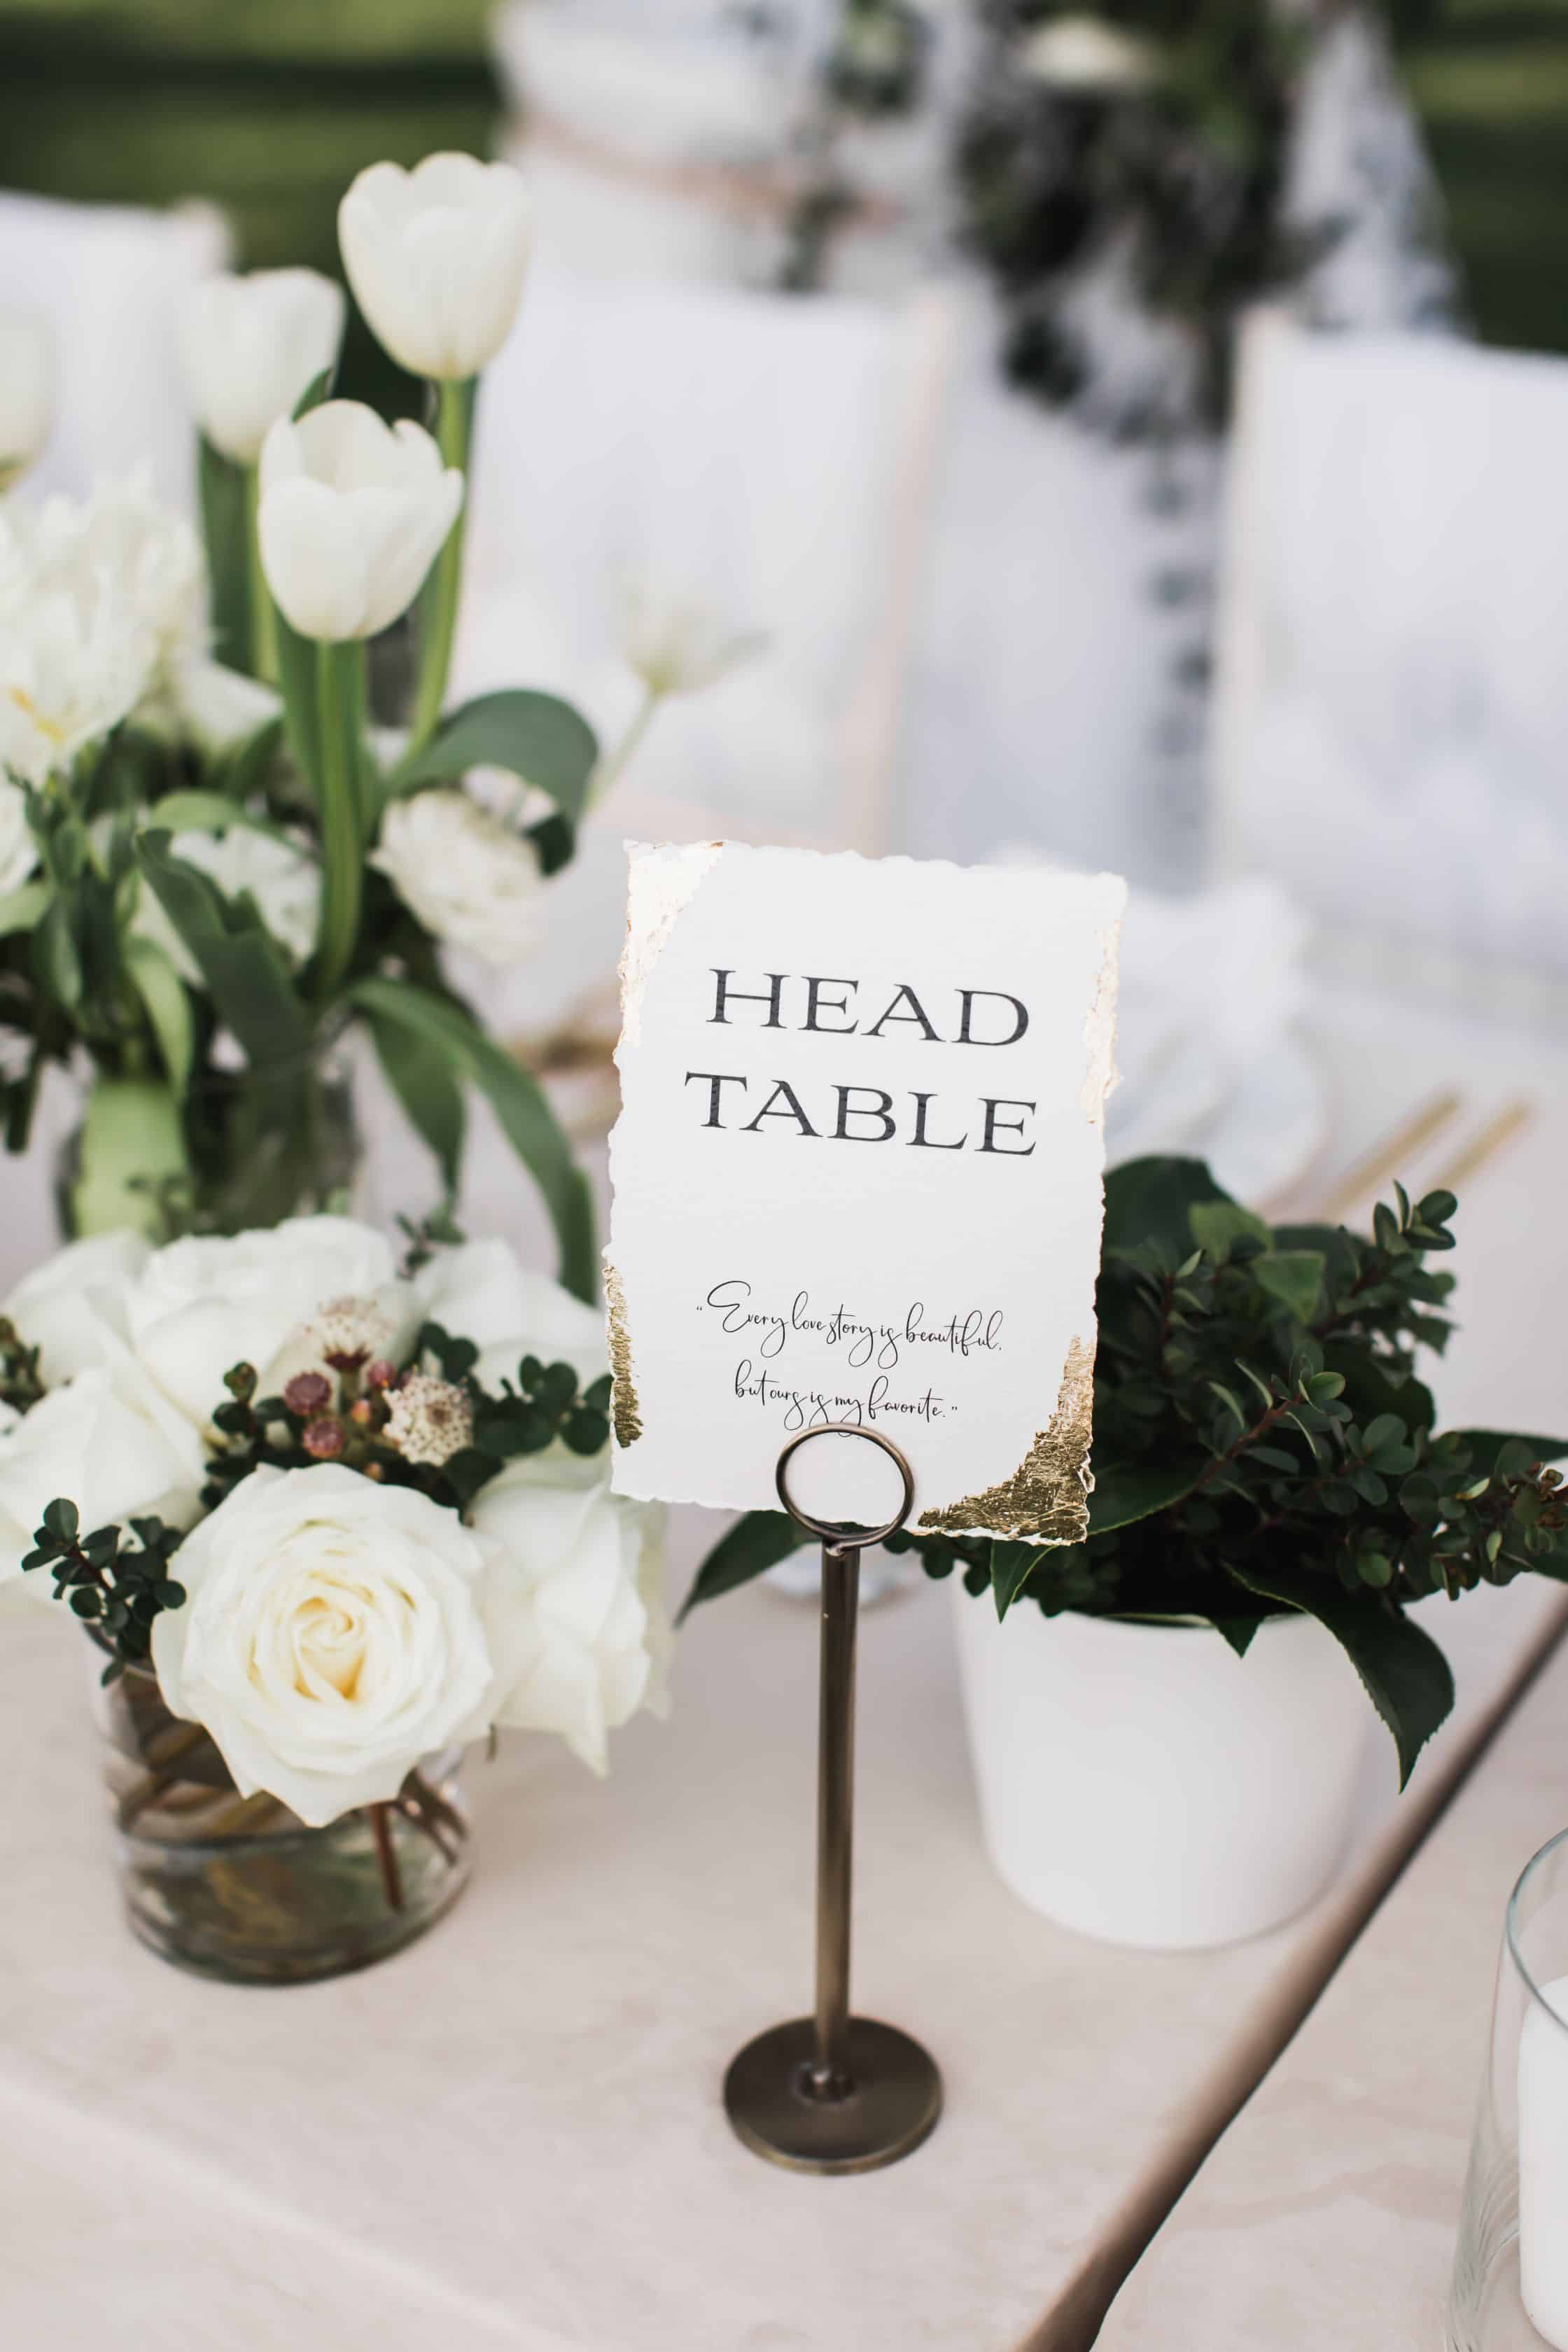 Head table sign with flowers | Maui's Angels